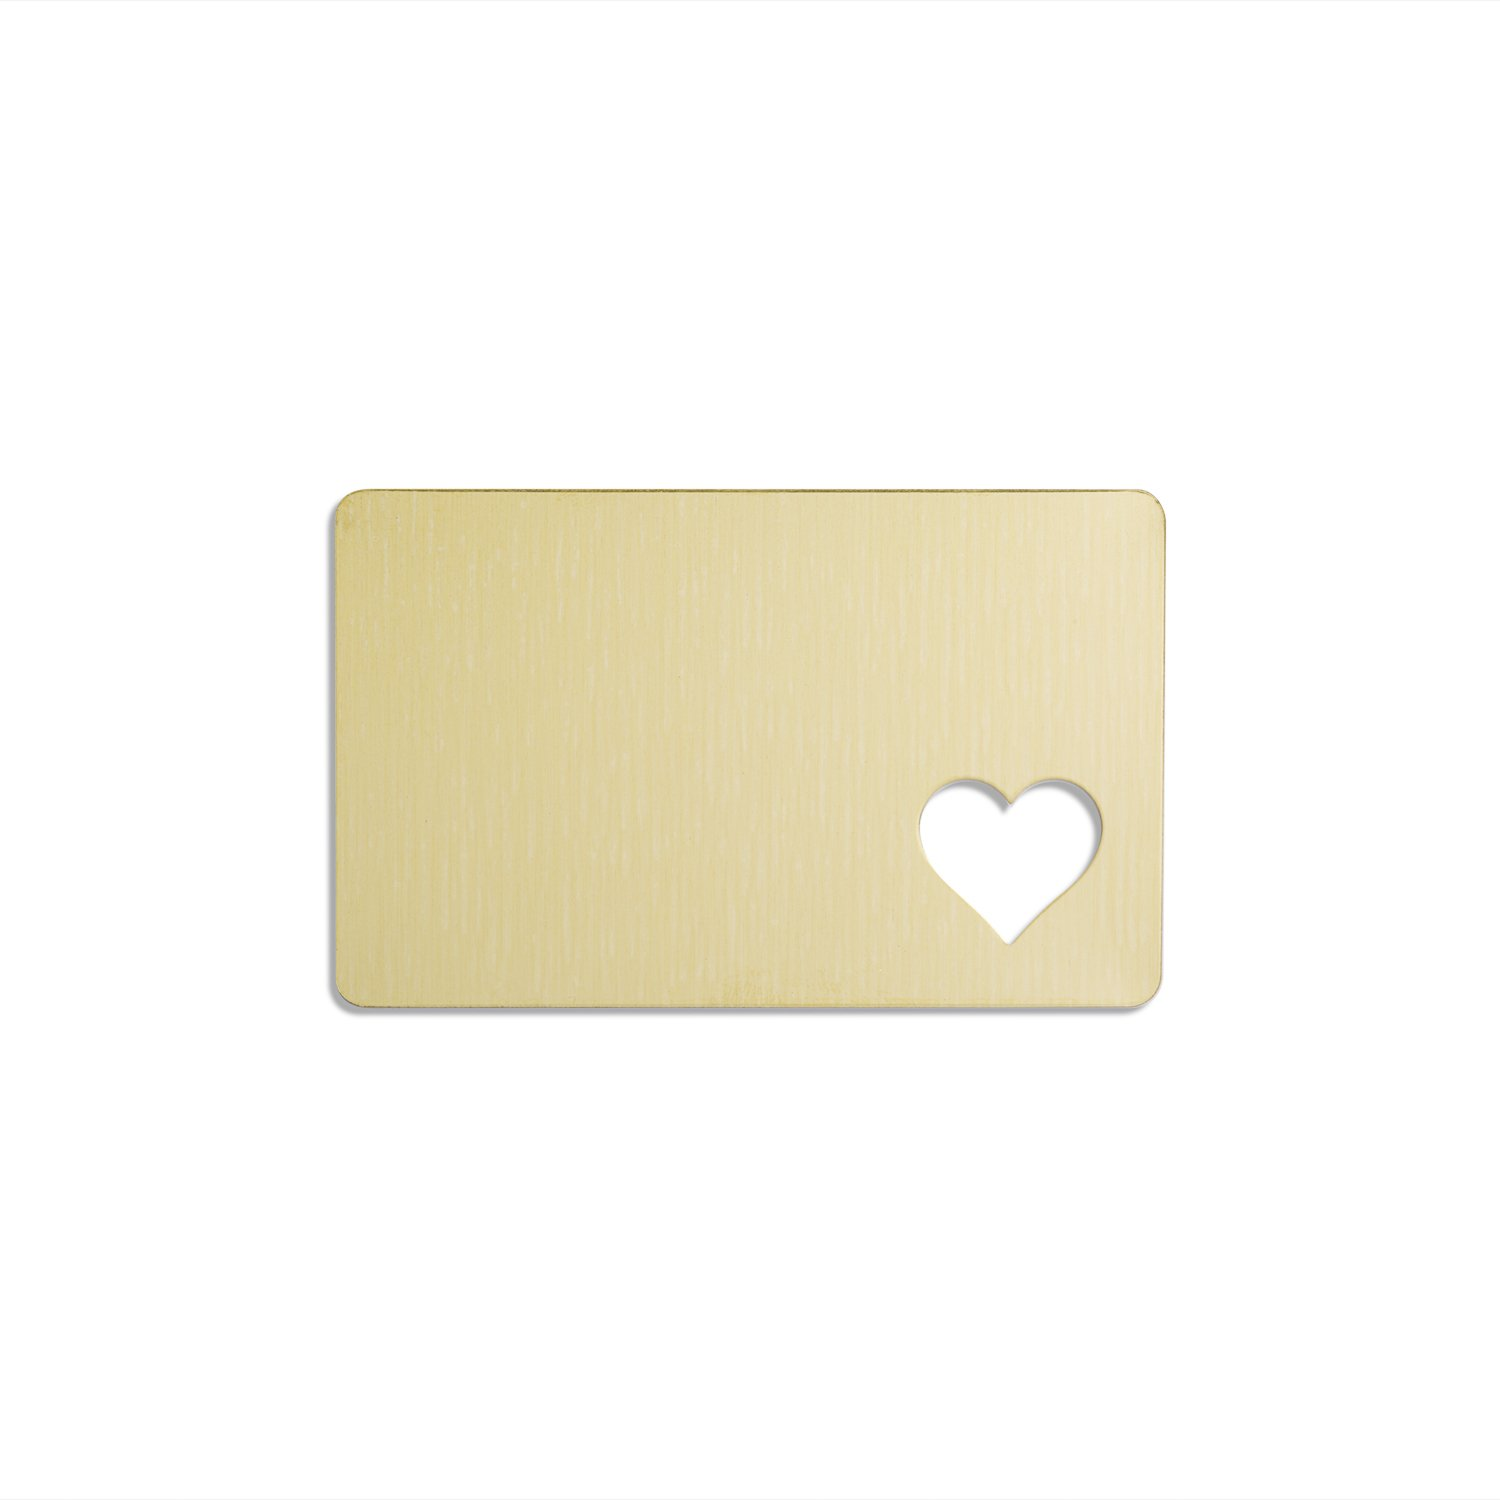 "RMP Stamping Blanks, 2 1/8"" X 3 3/8"" Rectangle Wallet Card With .691"" X .75"" Heart Cutout, .032"" (20 Gauge) Brass - 6 Pack"